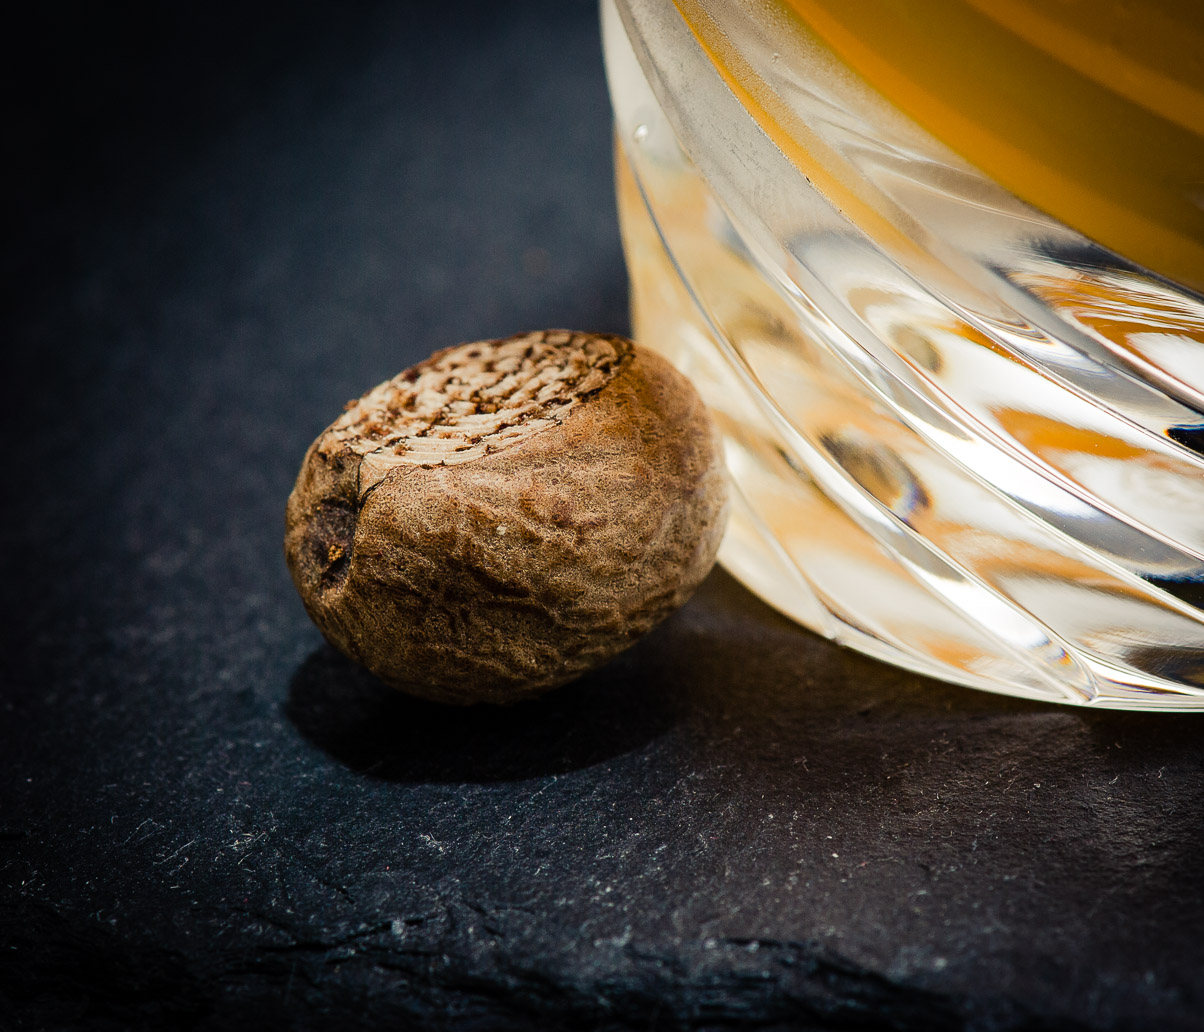 Nutmeg for Chatham Artillery Punch, photo © 2013 Douglas M. Ford. All rights reserved.